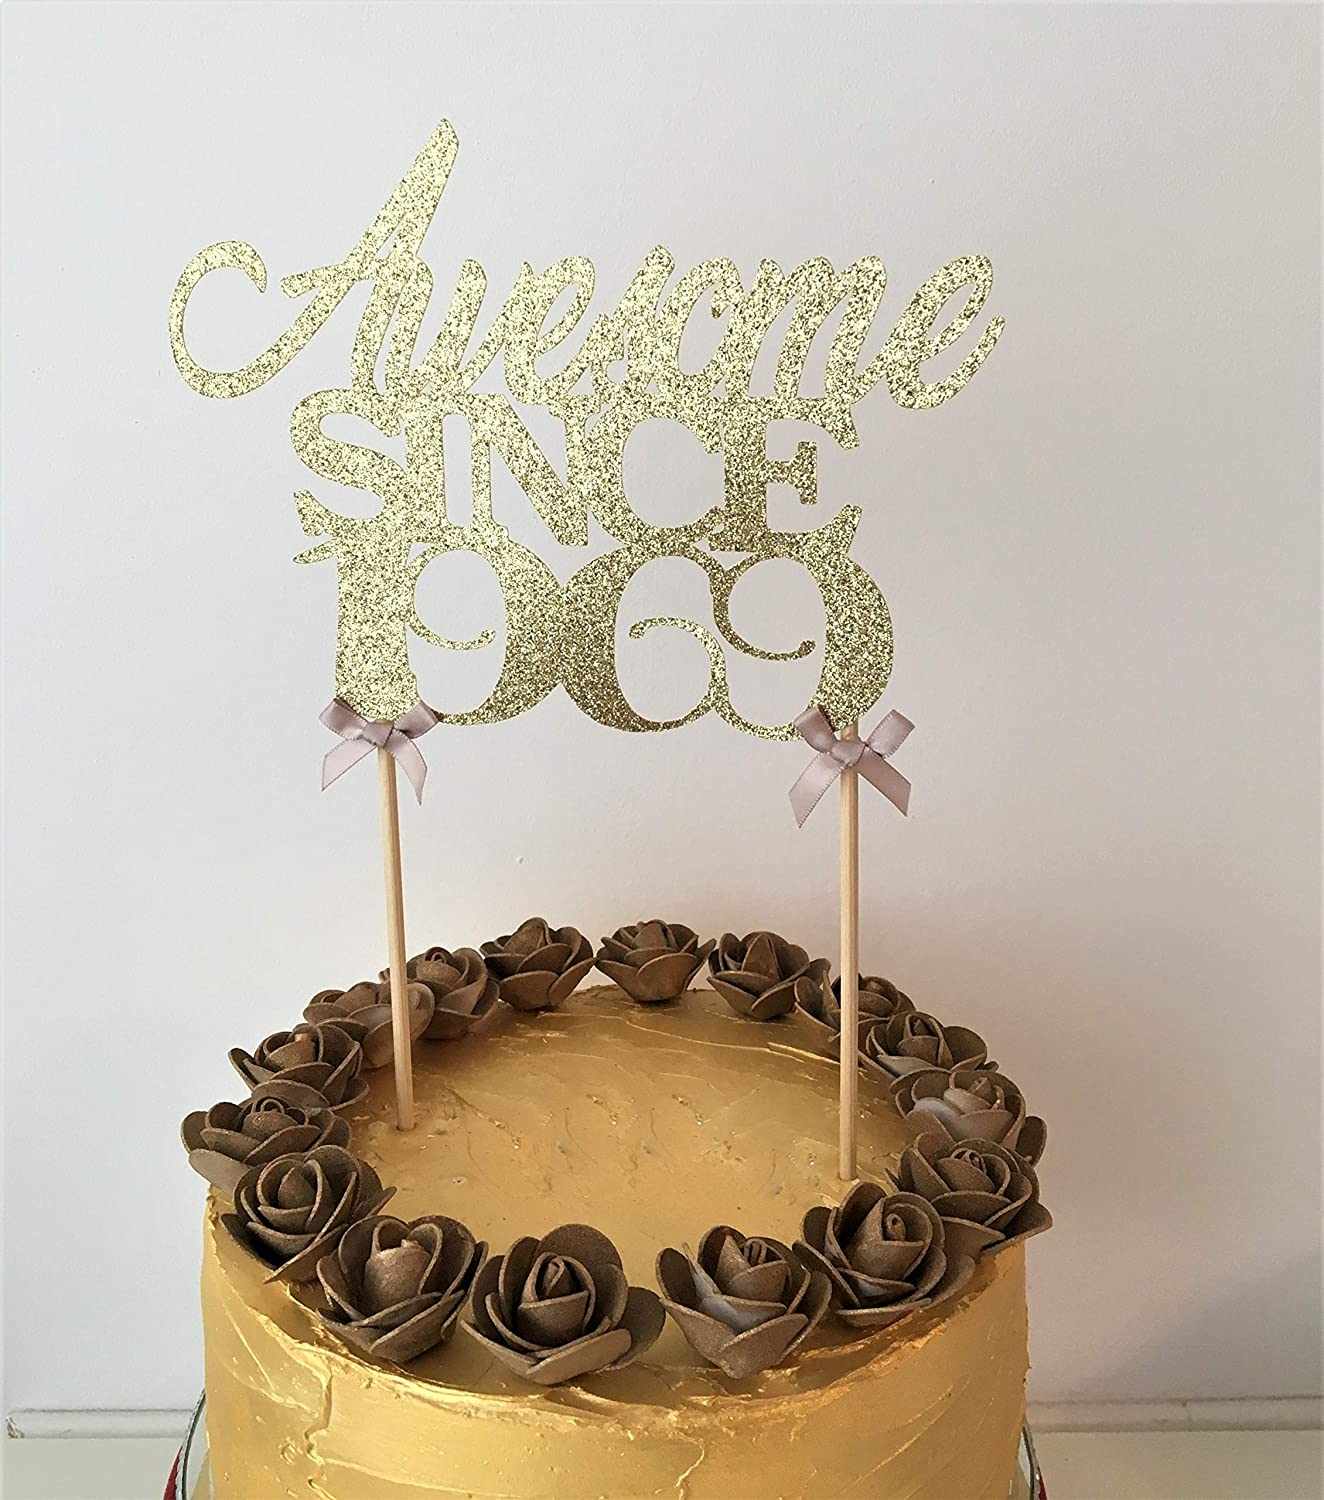 Awesome since 1969 Glitter Card Birthday Cake Topper 50th Birthday Decoraton.